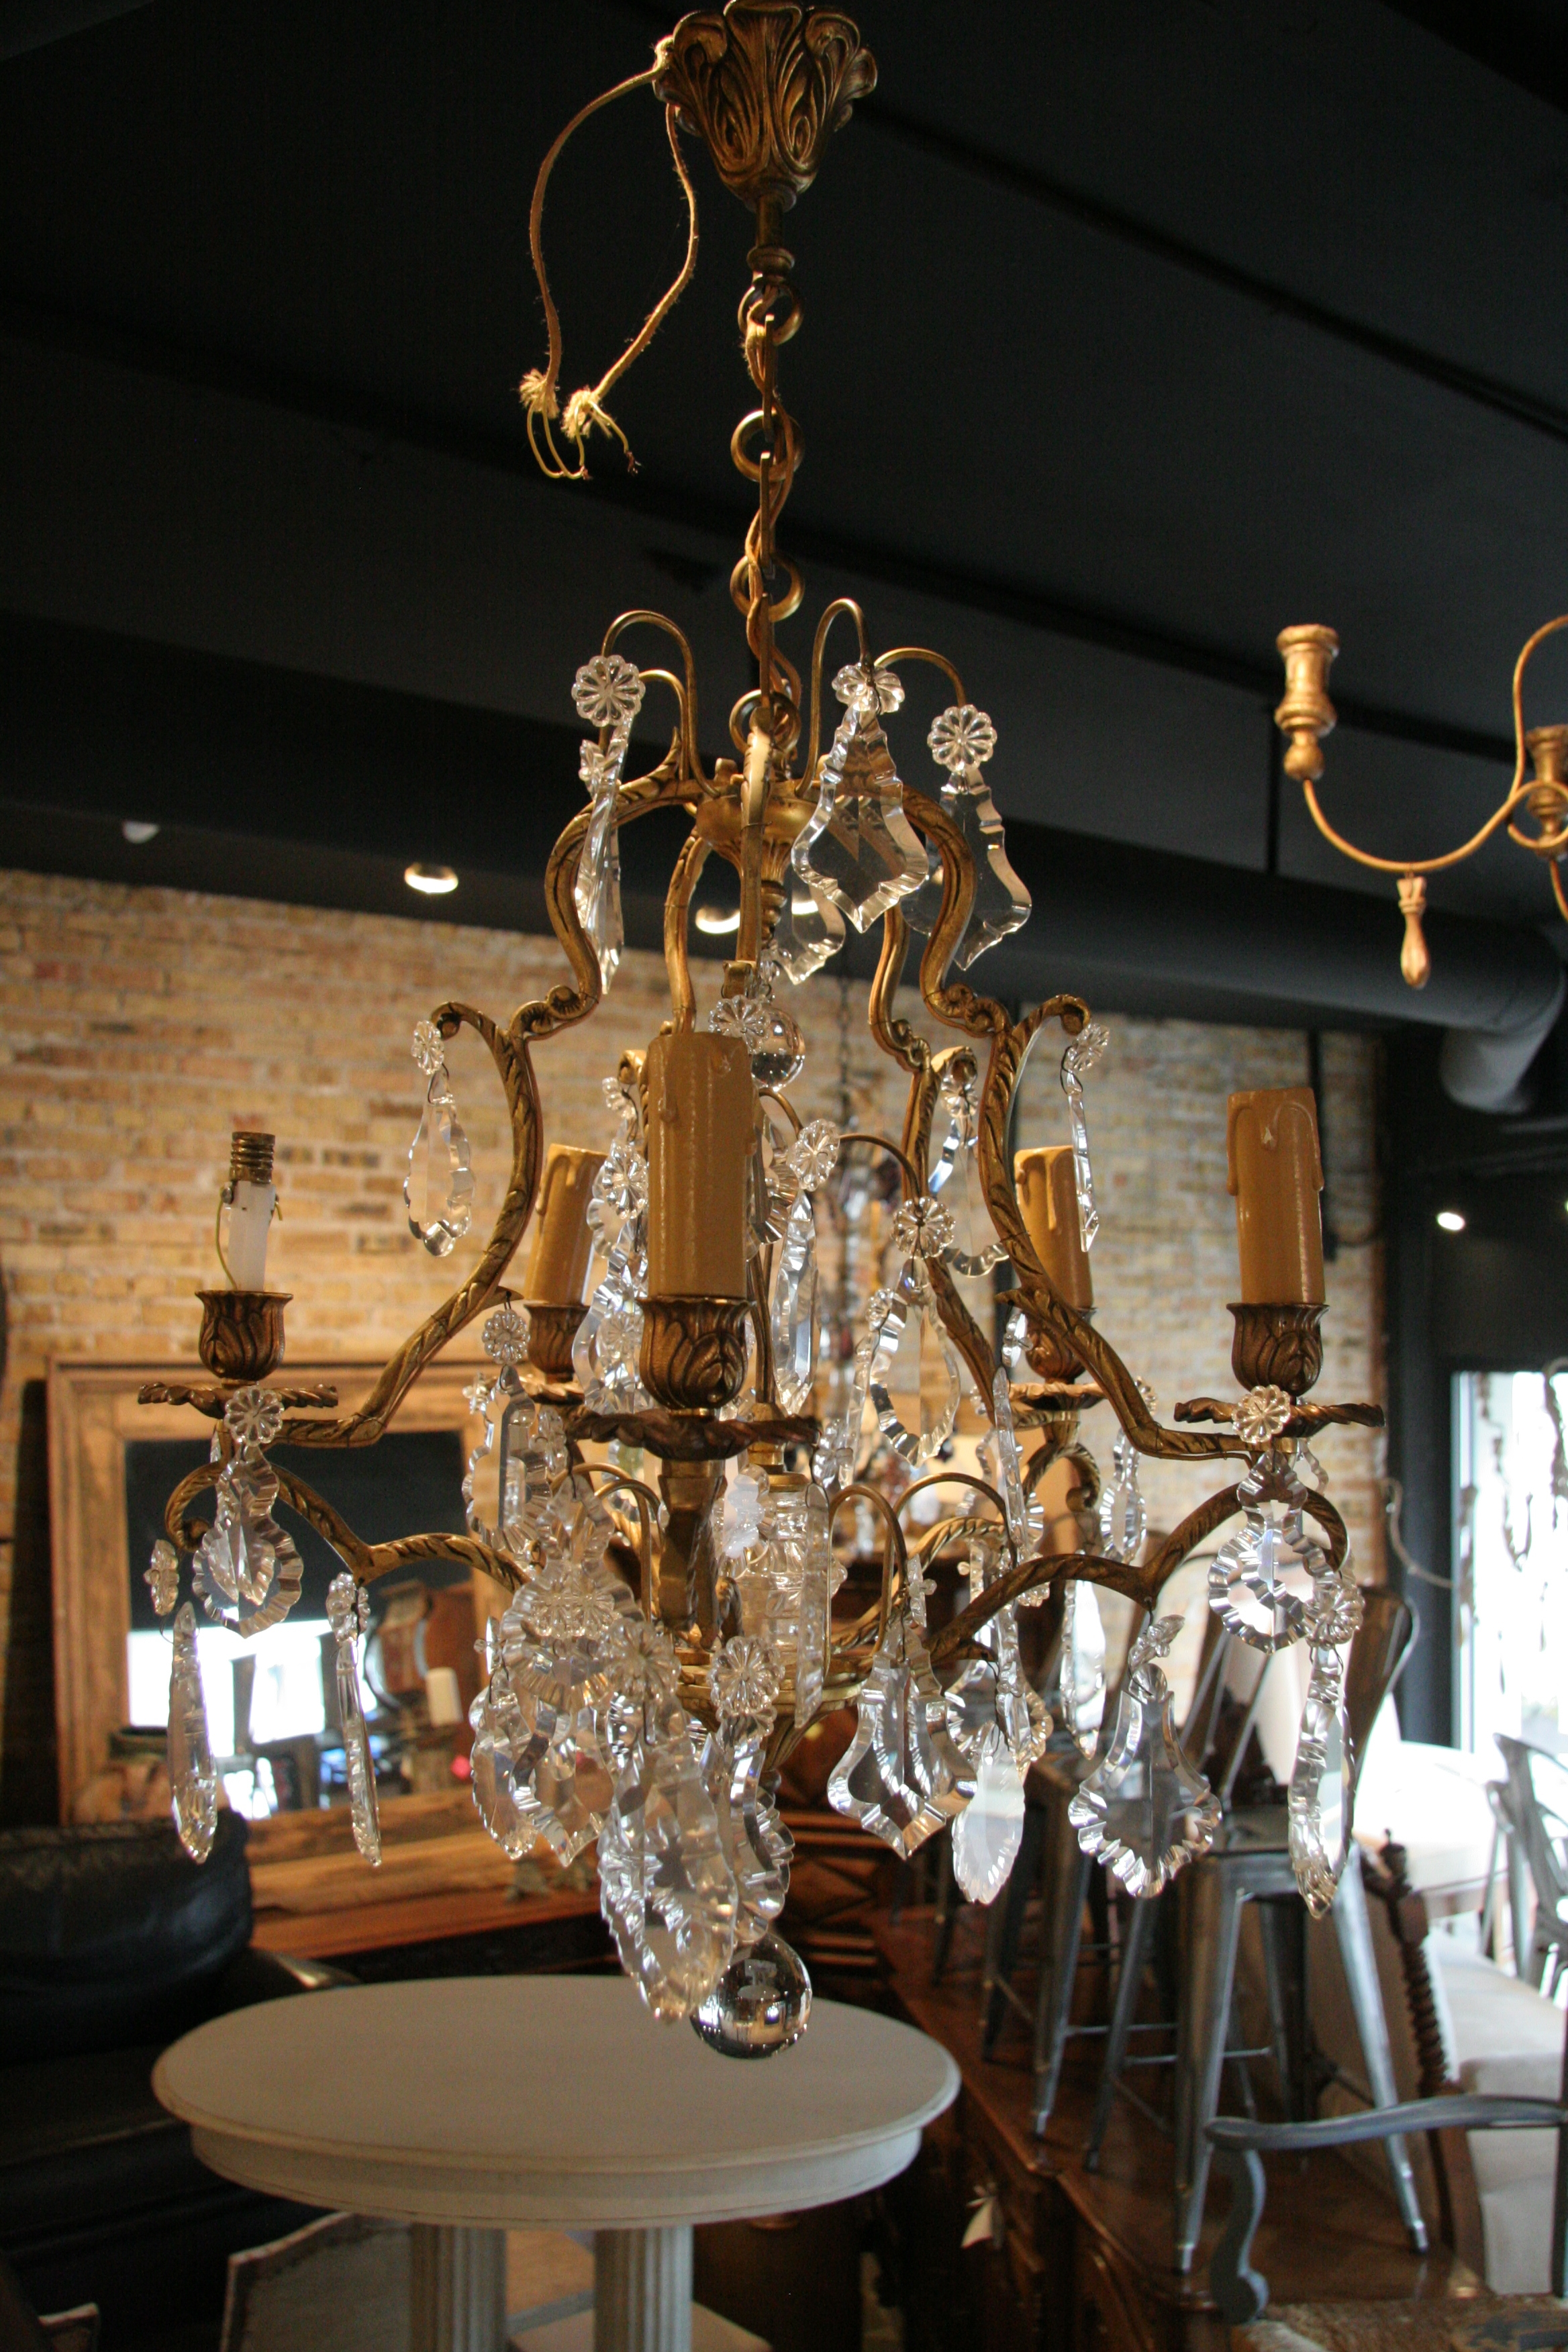 Antique French 5 Light Brass And Crystal Chandelier In French Antique Chandeliers (#4 of 12)